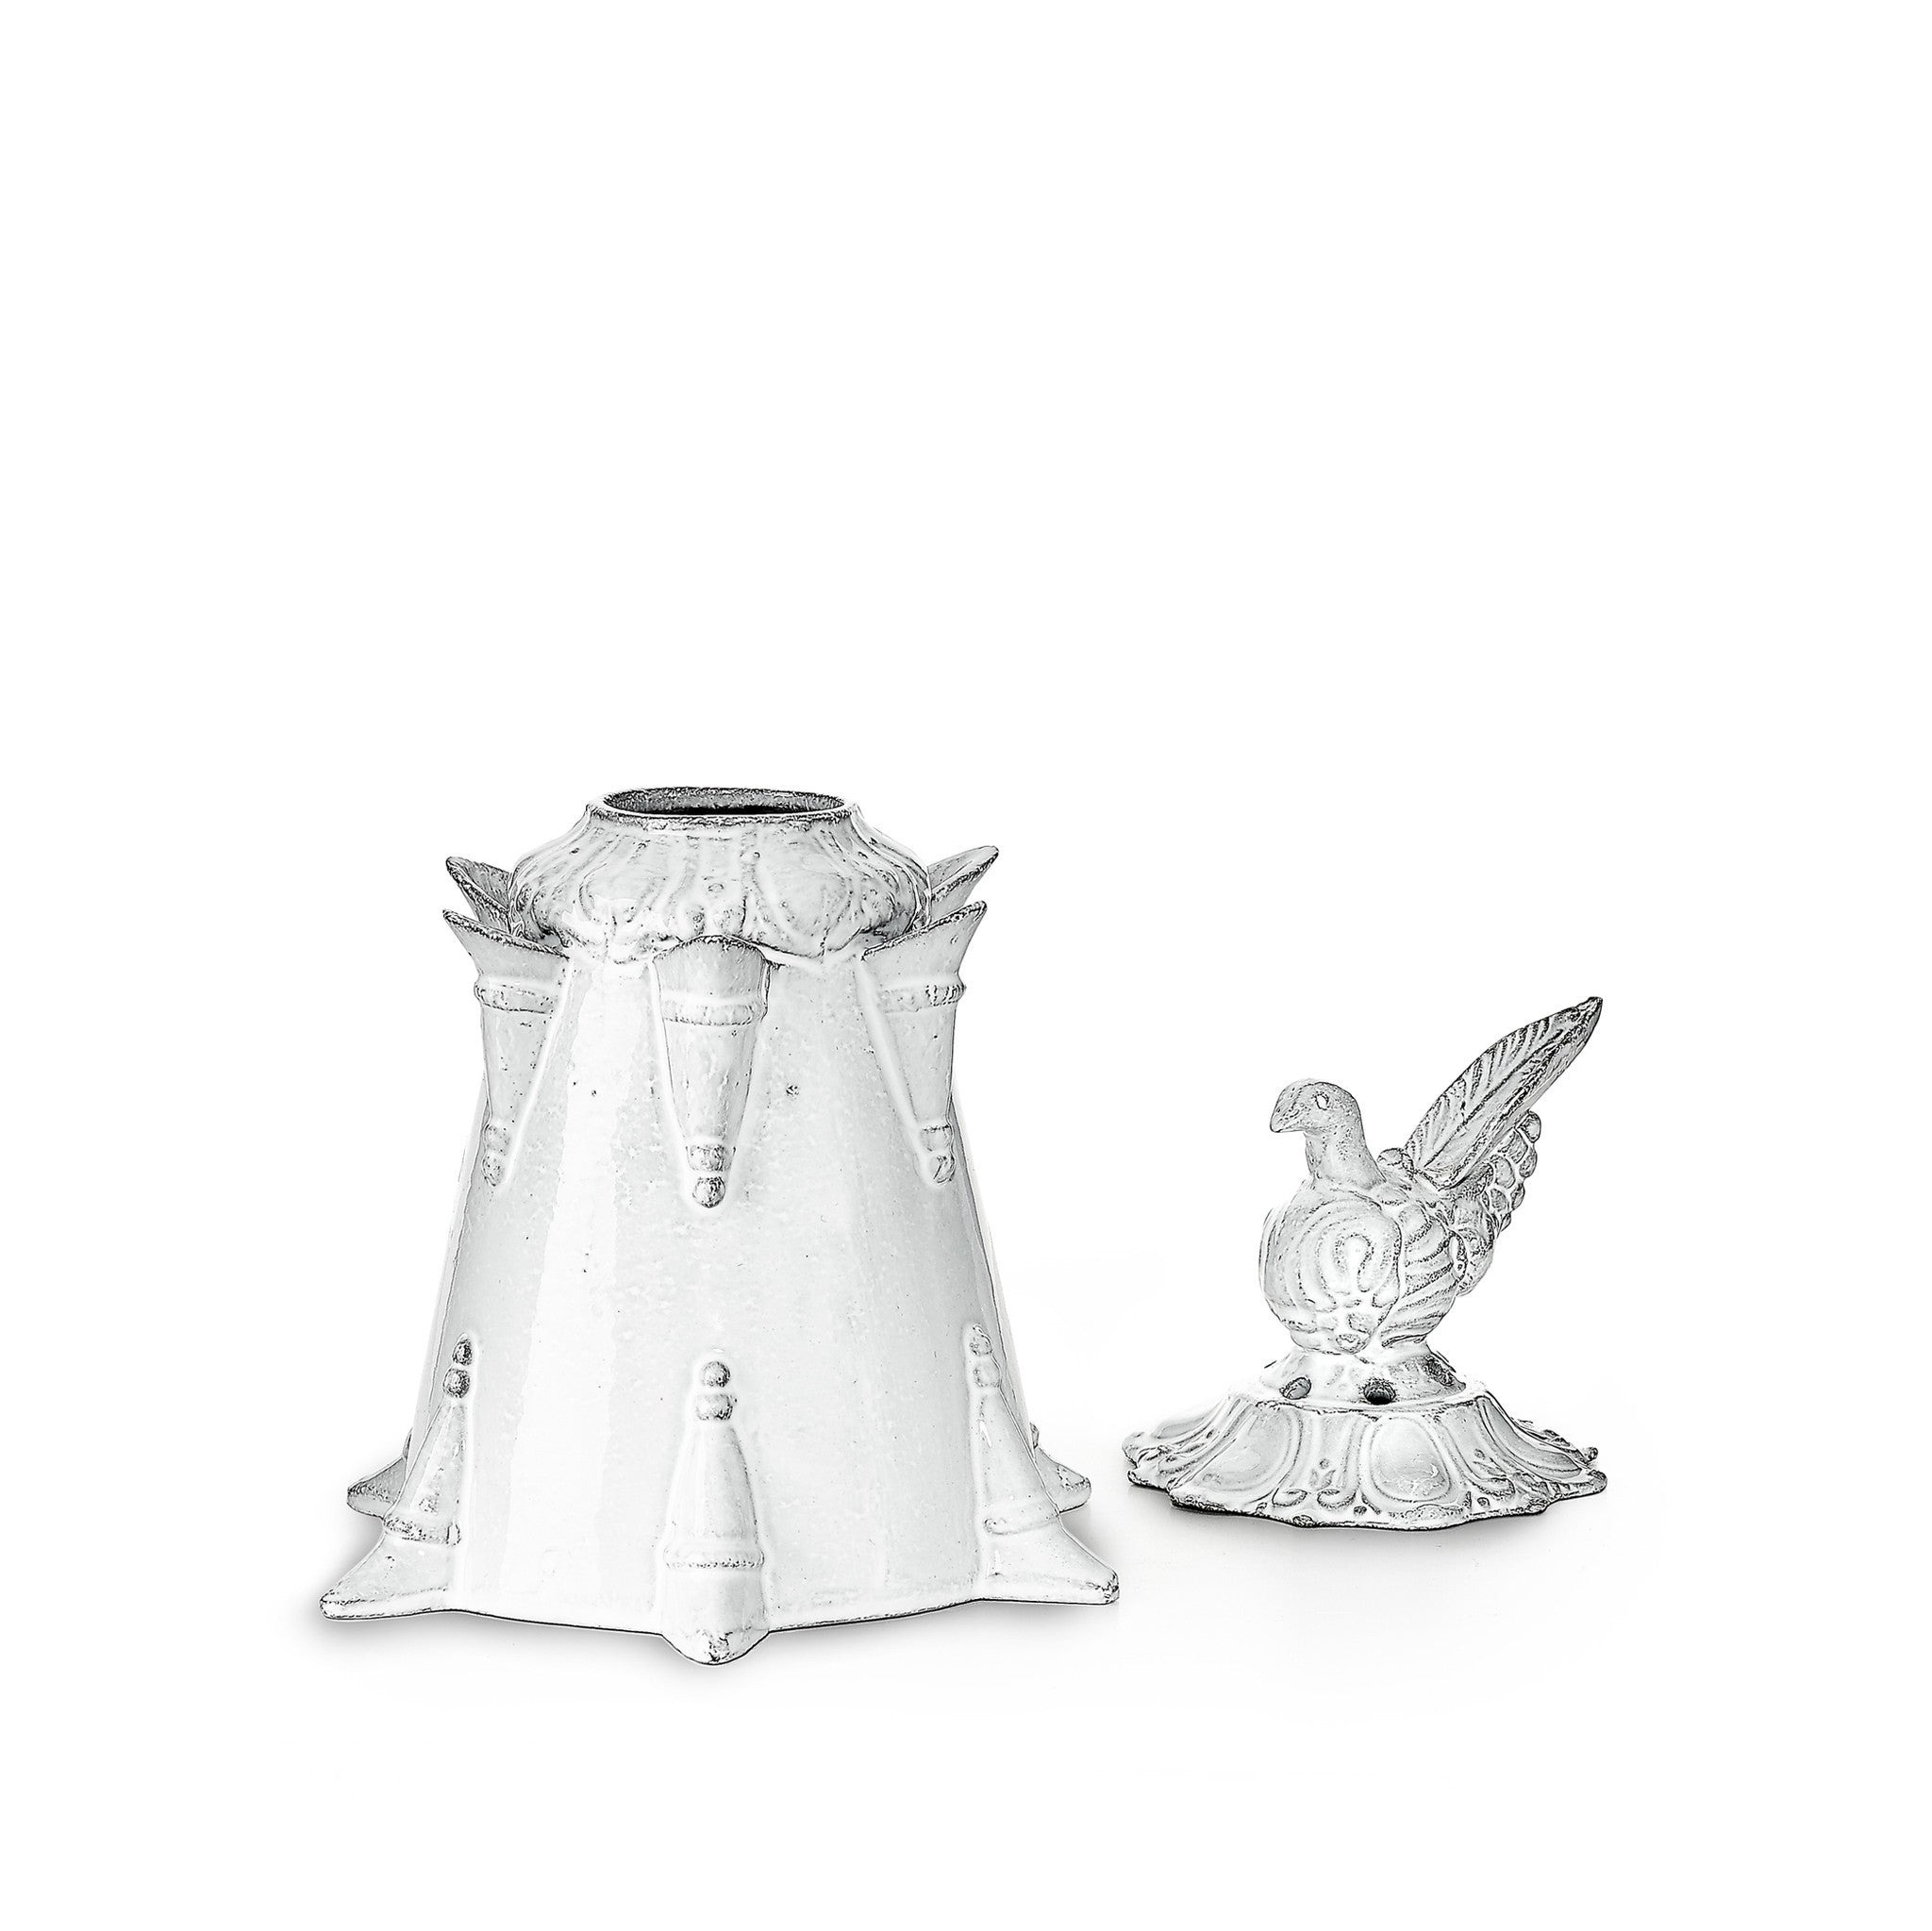 Chicken Vase by Astier de Villatte